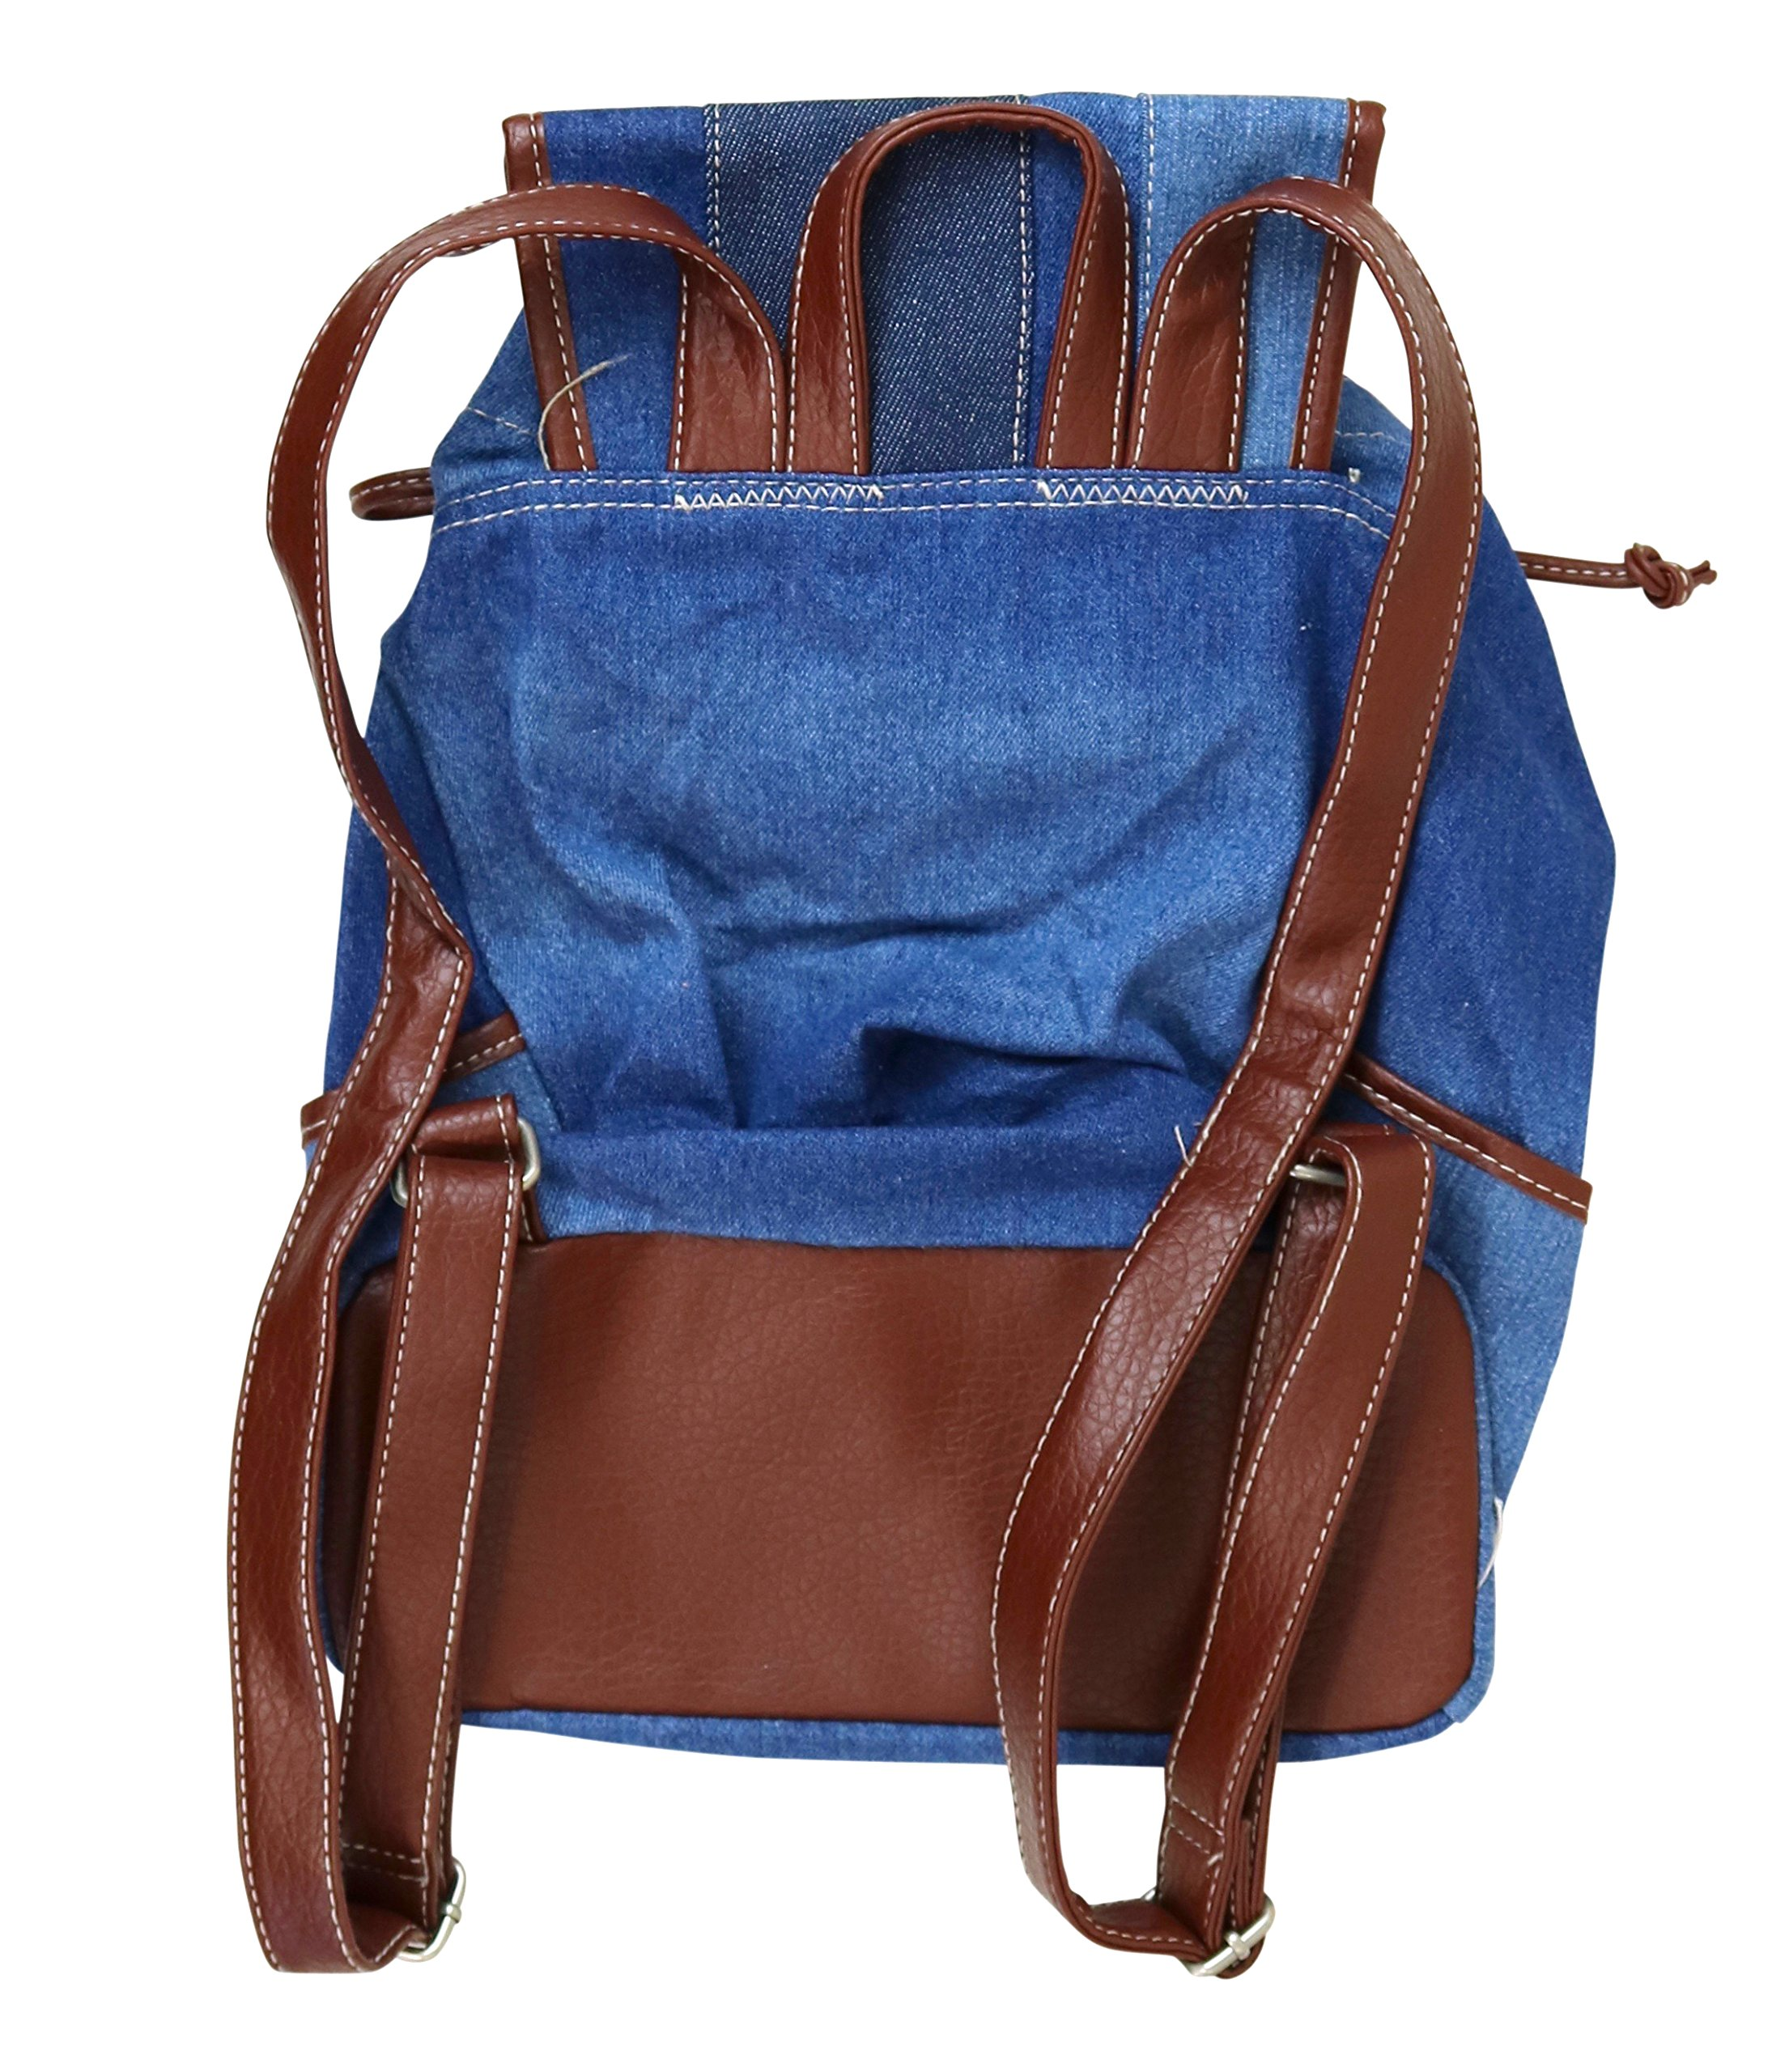 Unionbay Denim Backpack Handbag with Adjustable Faux Leather Straps by UNIONBAY (Image #2)